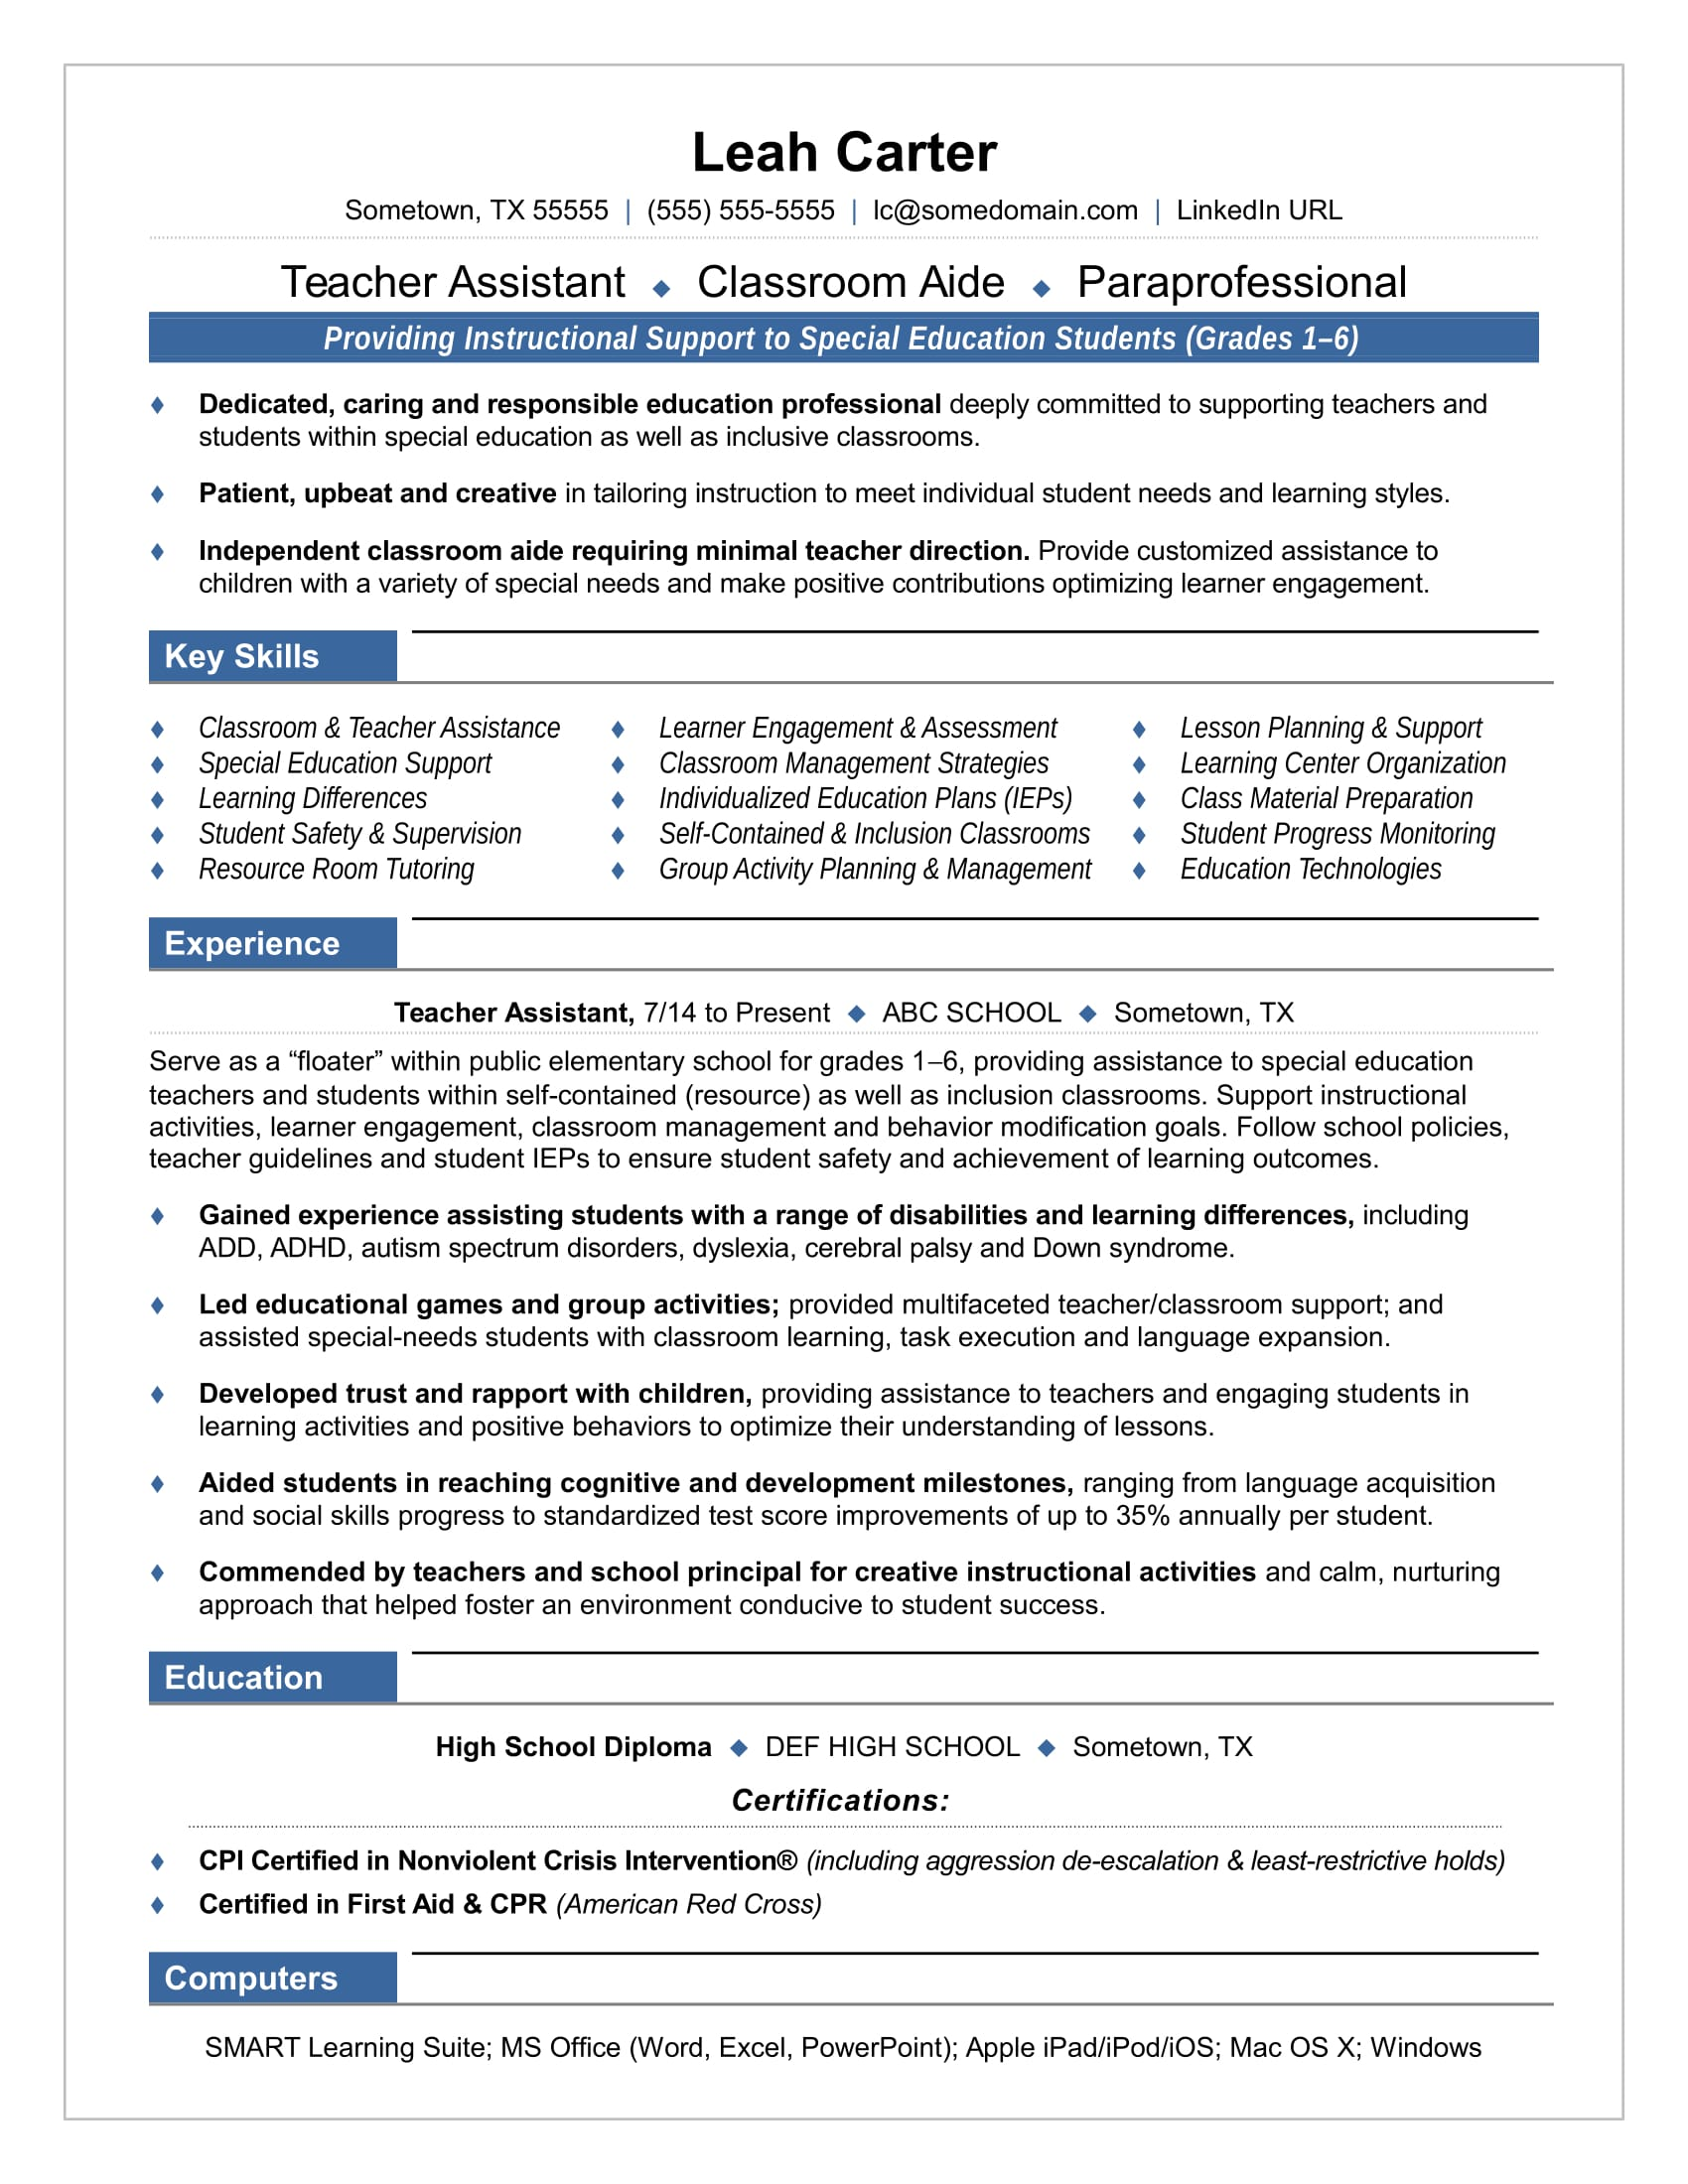 Teacher Assistant Resume Sample | Monster com